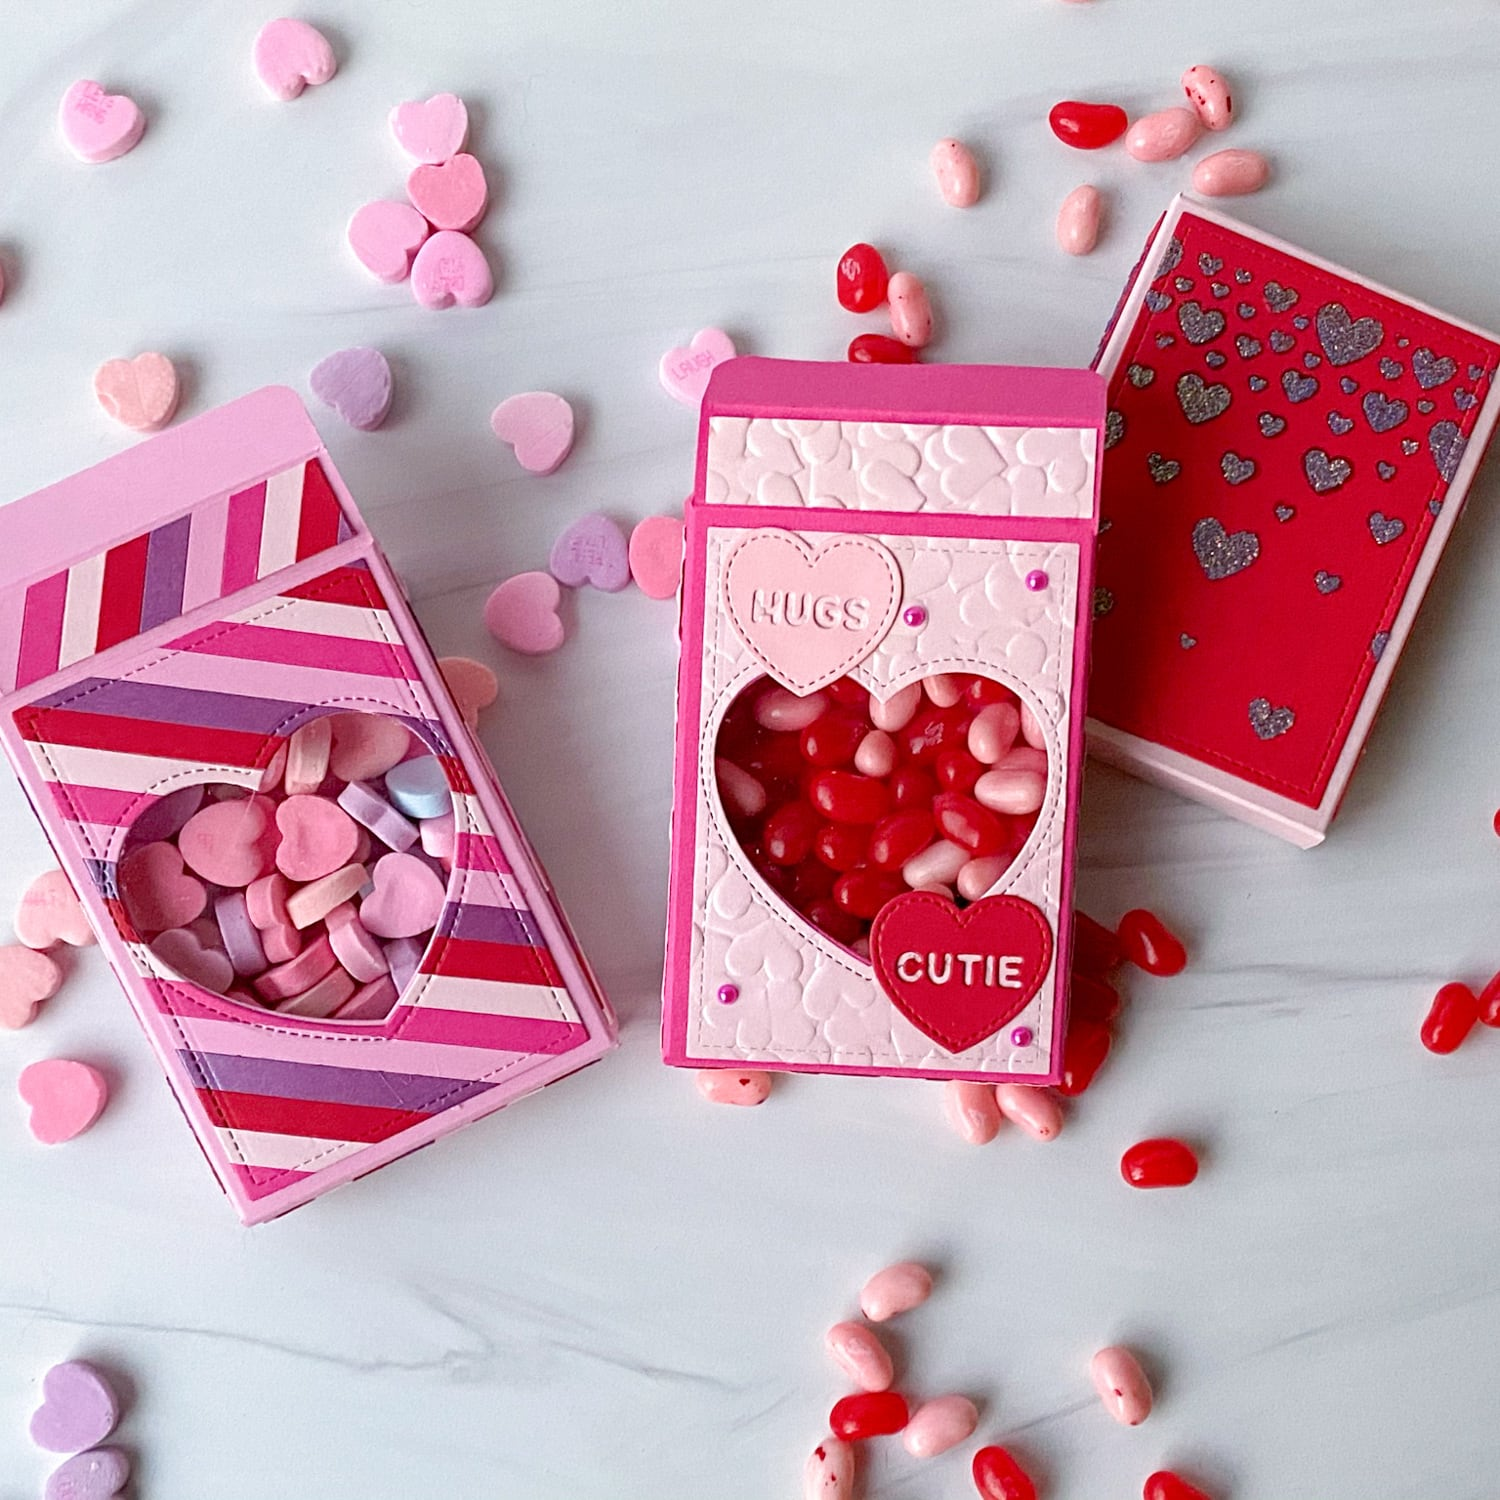 Finished Candy Heart Valentine's Day Boxes